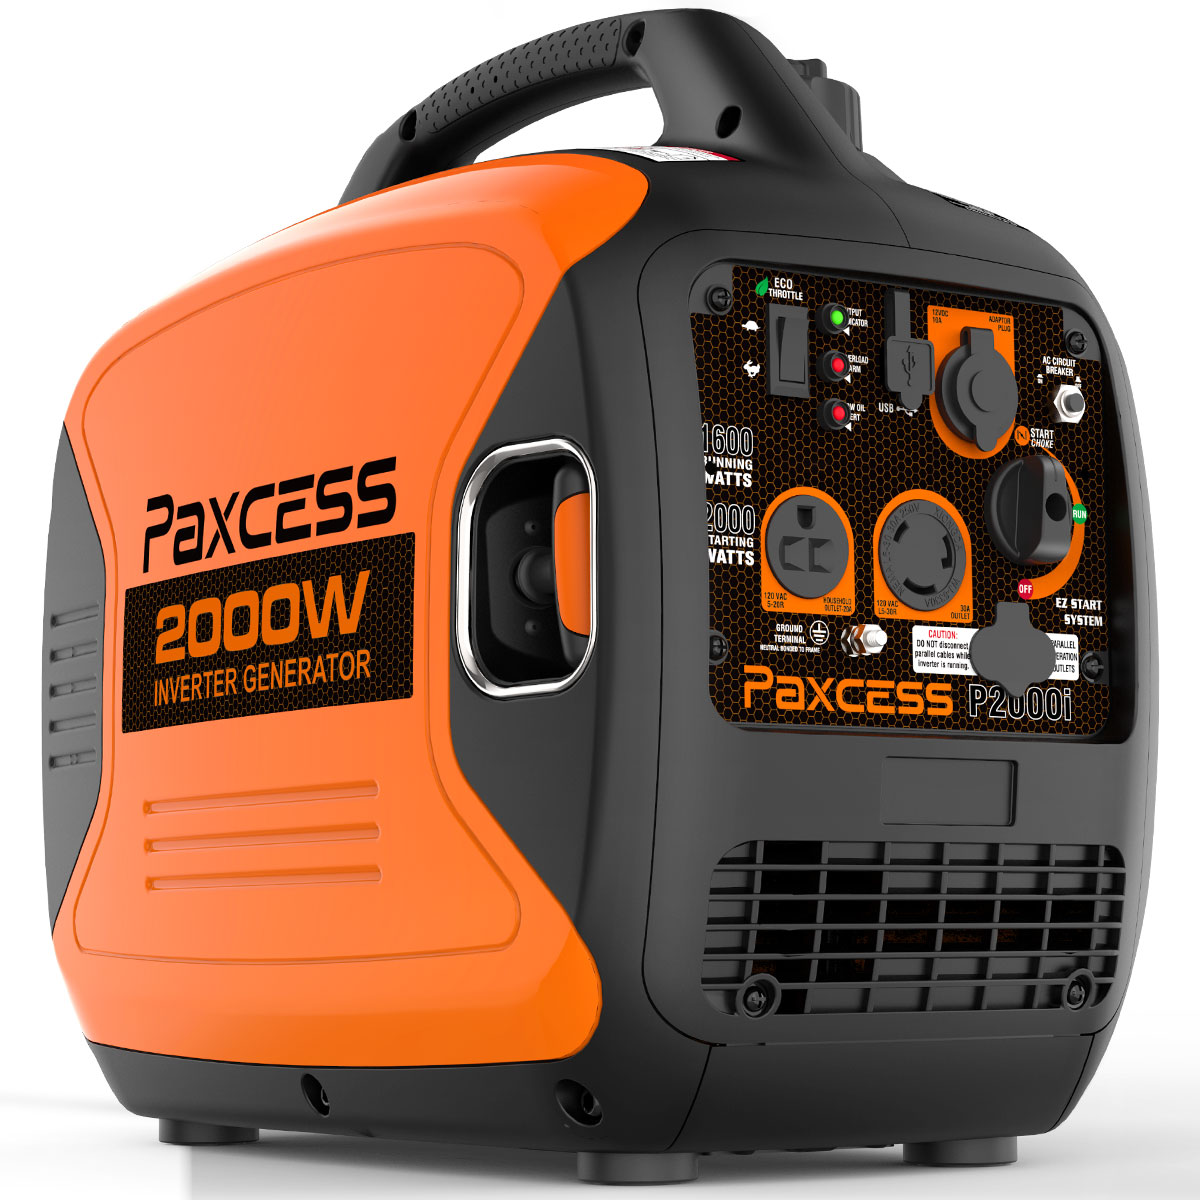 Paxcess 2000 Watt Generator RV Parallel Ready Inverter Generator With Eco-Mode, CARB Complaint, 120V 30A/20A AC Outlet/USB/Cigarette Ports/12V DC Output